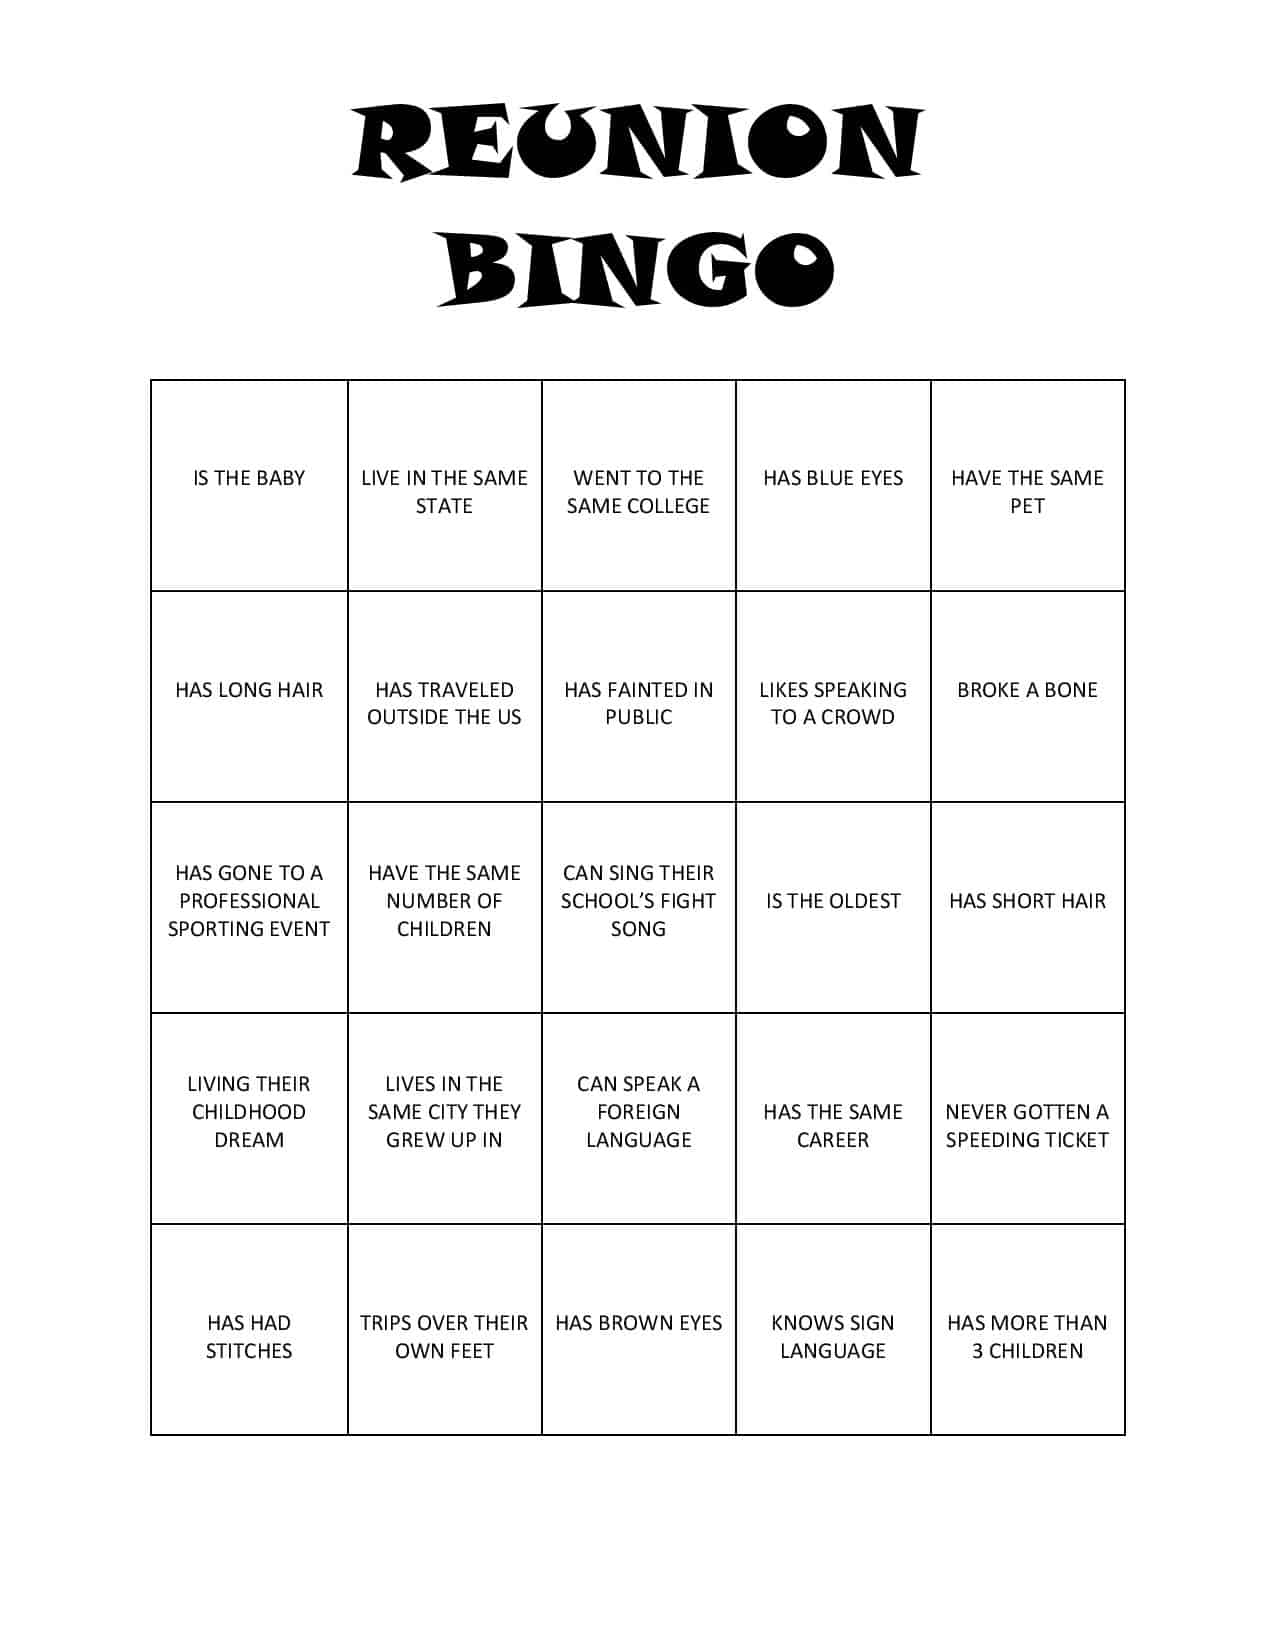 Print This Bingo Game For Your Next Reunion For Loads Of Fun And To Get To  Free Printable Family Reunion Templates